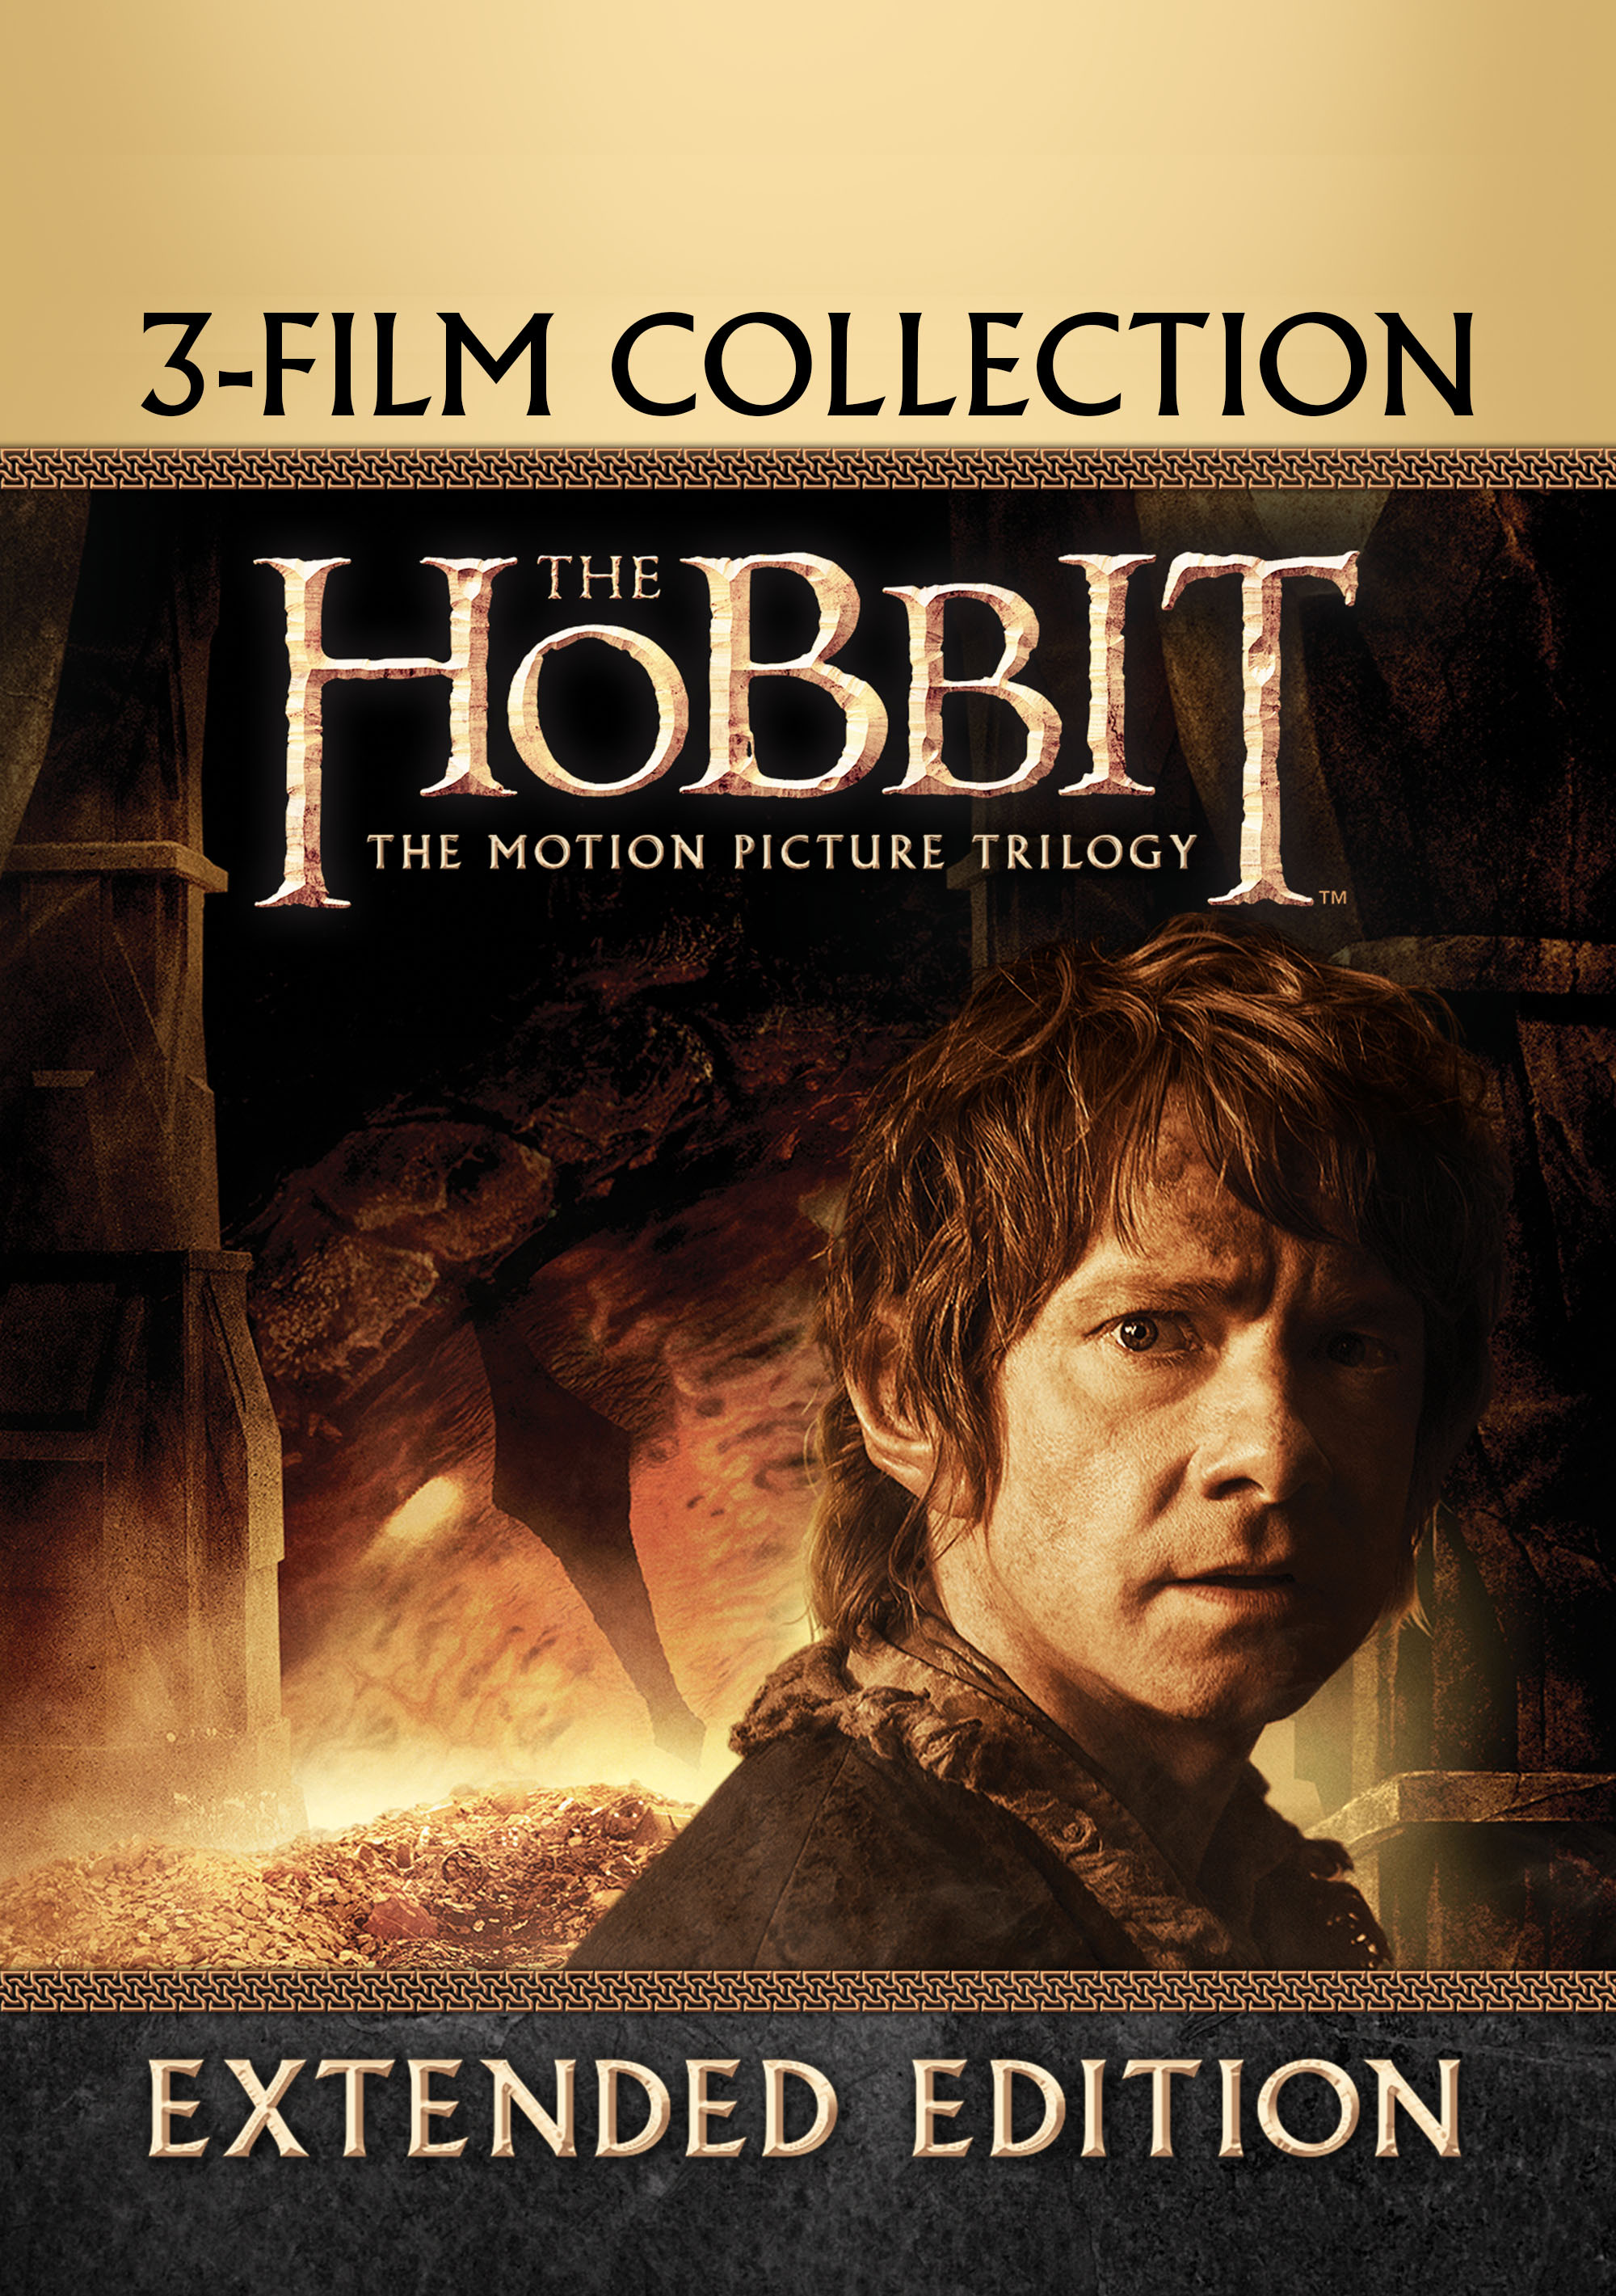 The Hobbit - Trilogy: Extended Edition